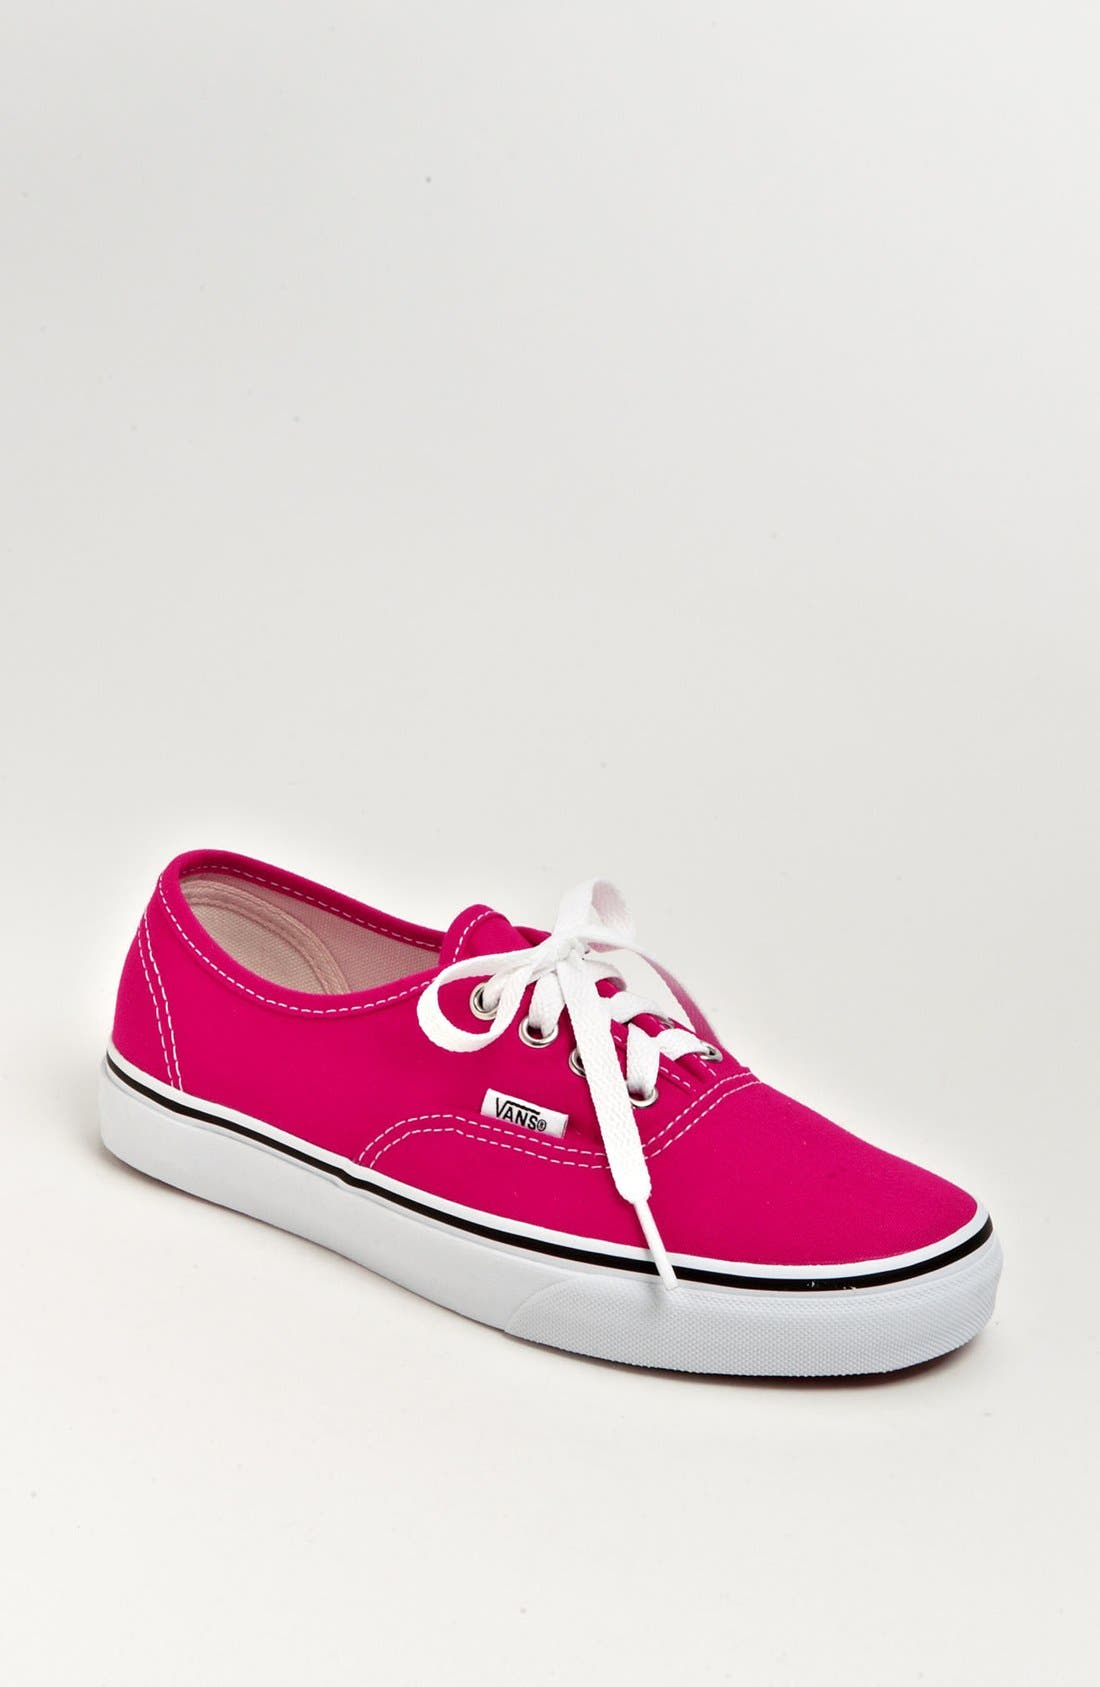 Alternate Image 1 Selected - Vans 'Authentic' Sneaker (Women)